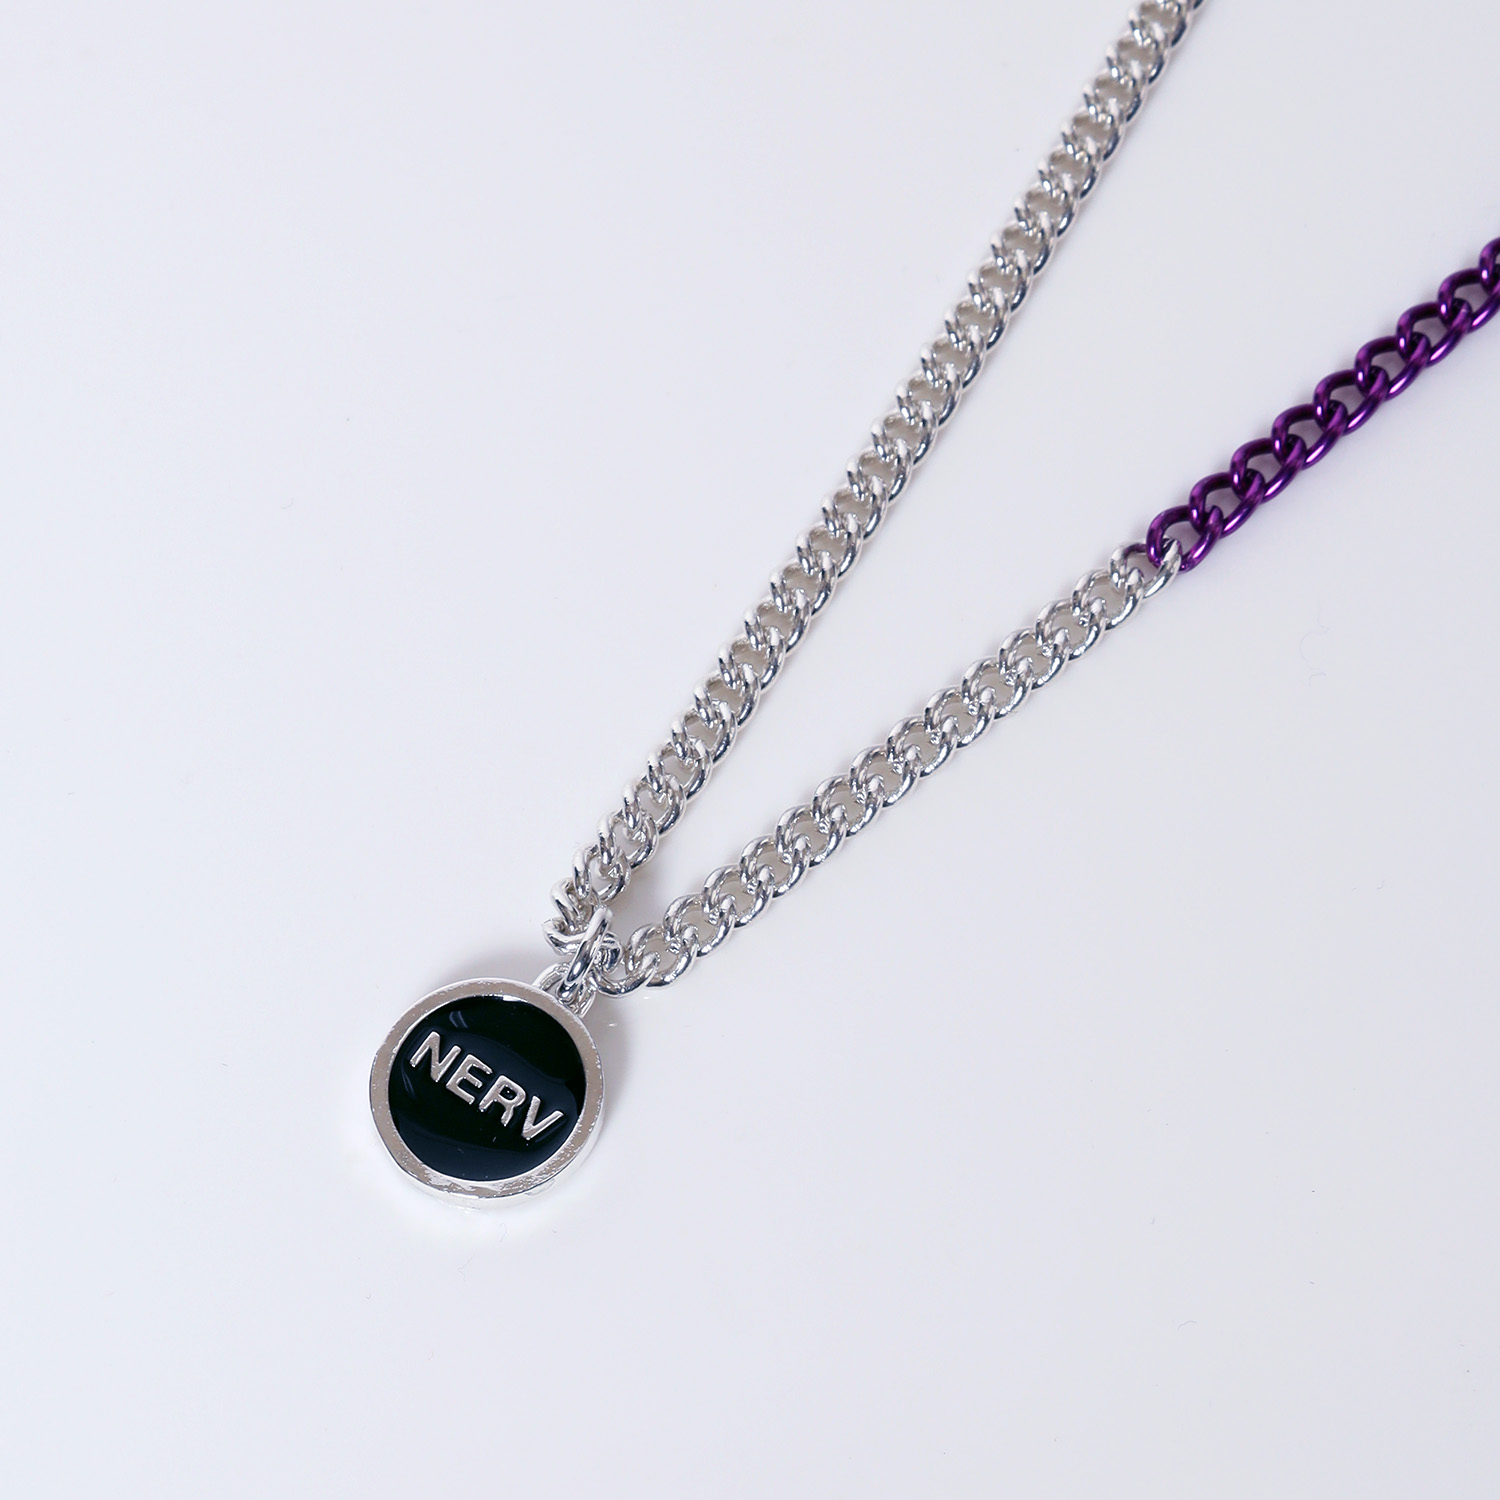 EVANGELION Charm Necklace